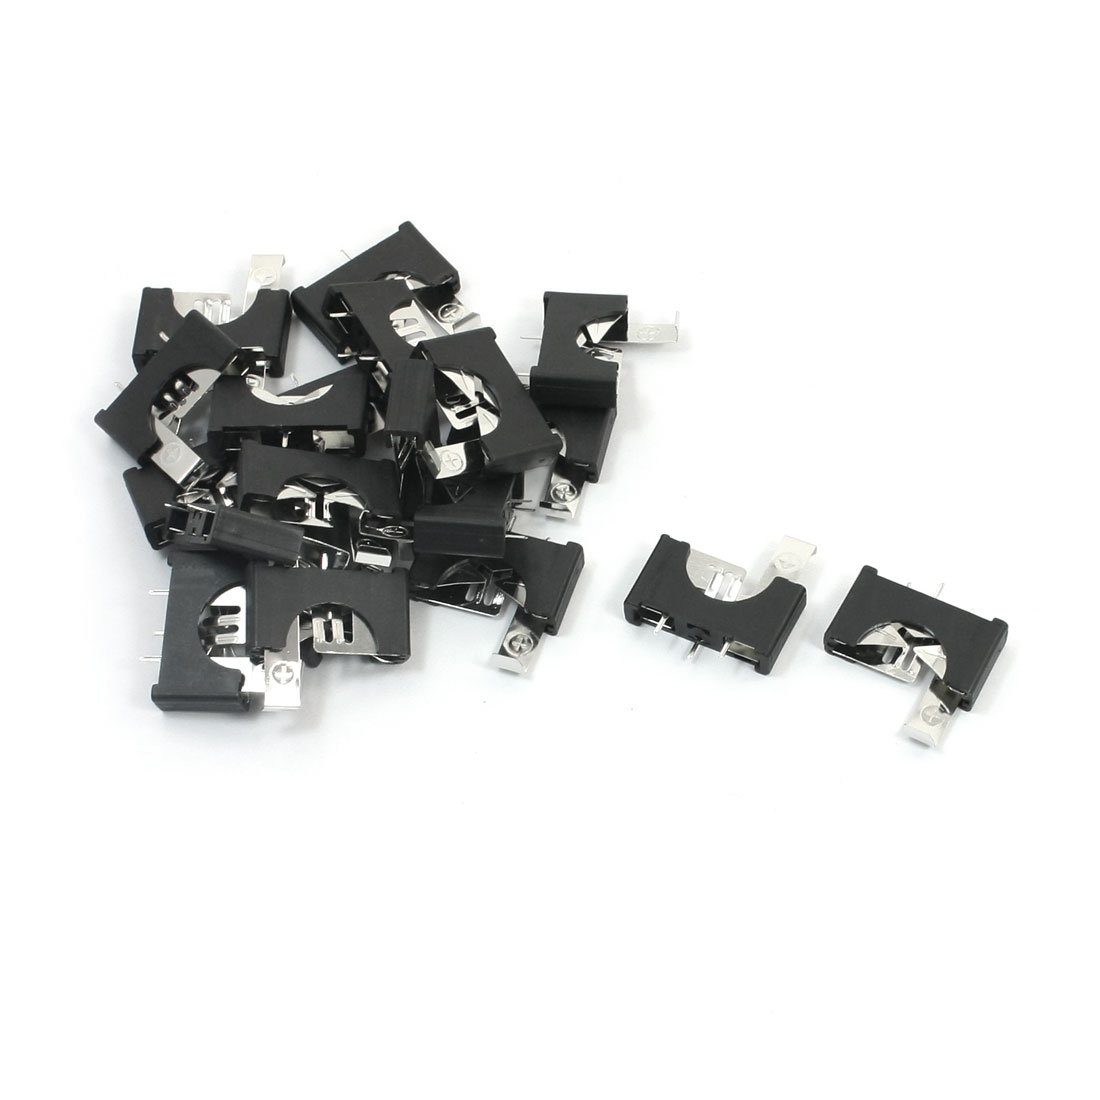 20 Pcs 3 Pins Plastic Housing CR2025 Coin Lithium Cell Button Battery Holder Socket Case Container